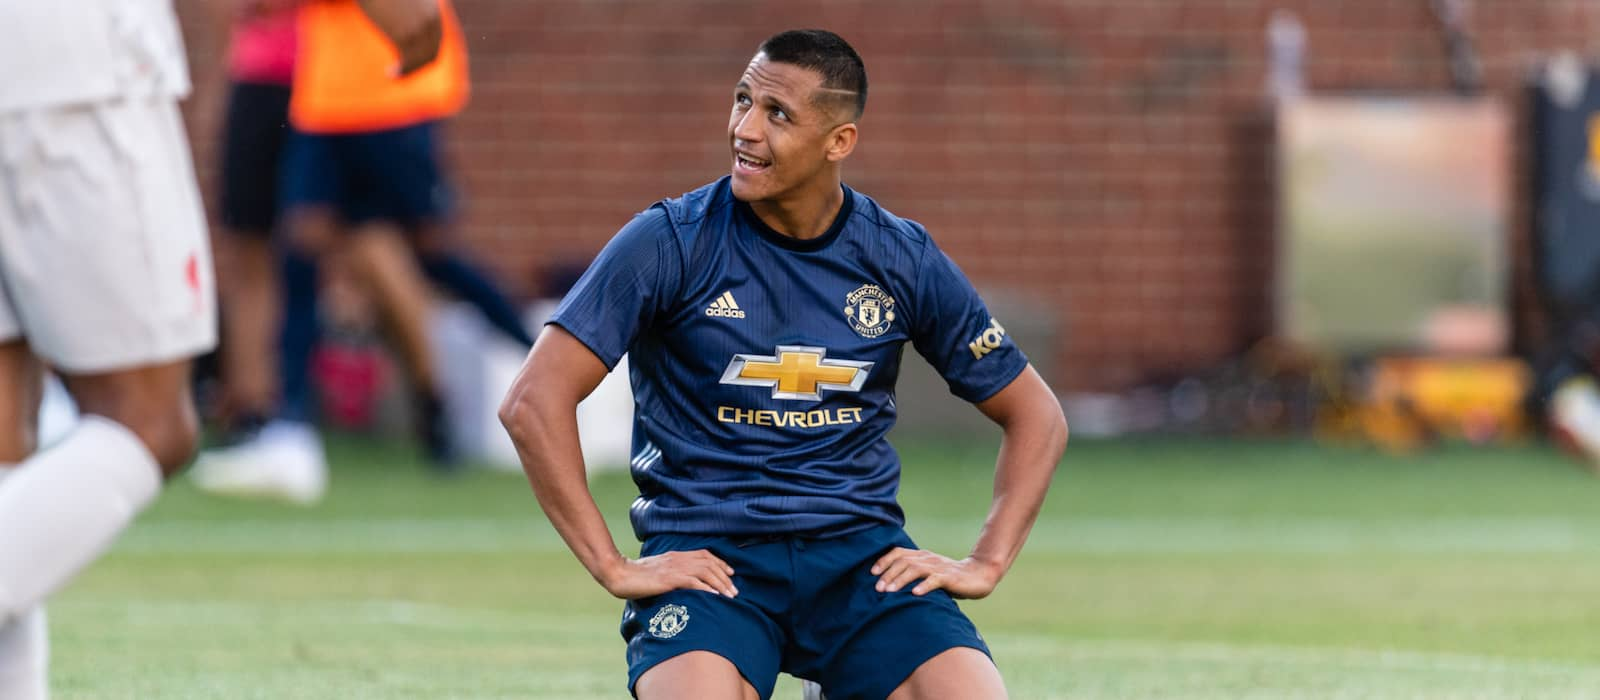 Photo: Alexis Sanchez in excellent spirits on return to Manchester United training